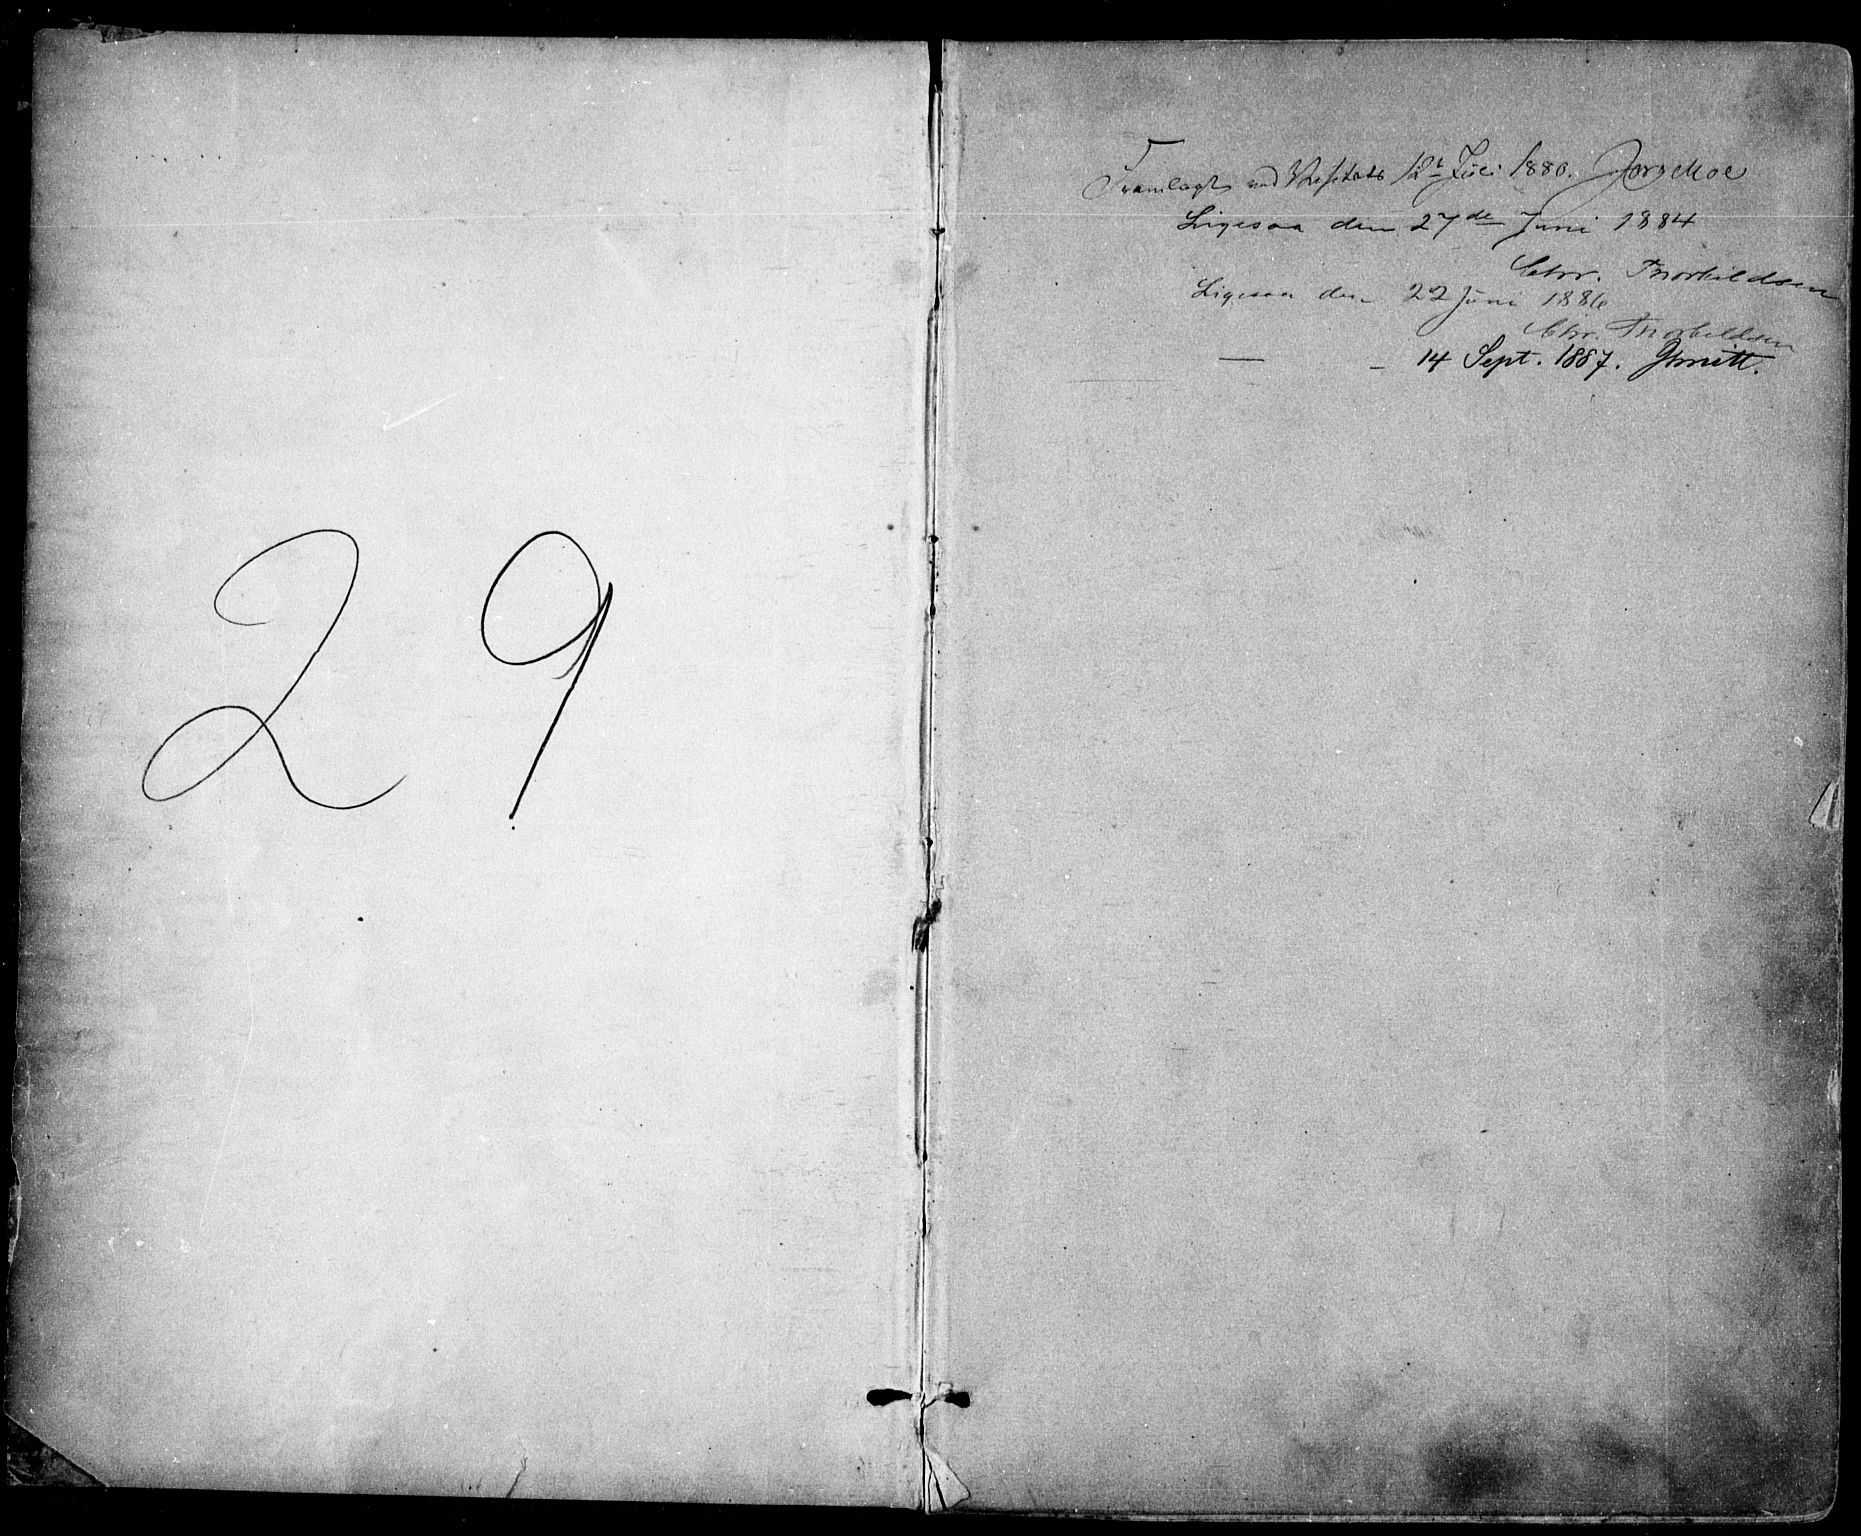 SAK, Evje sokneprestkontor, F/Fa/Faa/L0006: Parish register (official) no. A 6, 1866-1884